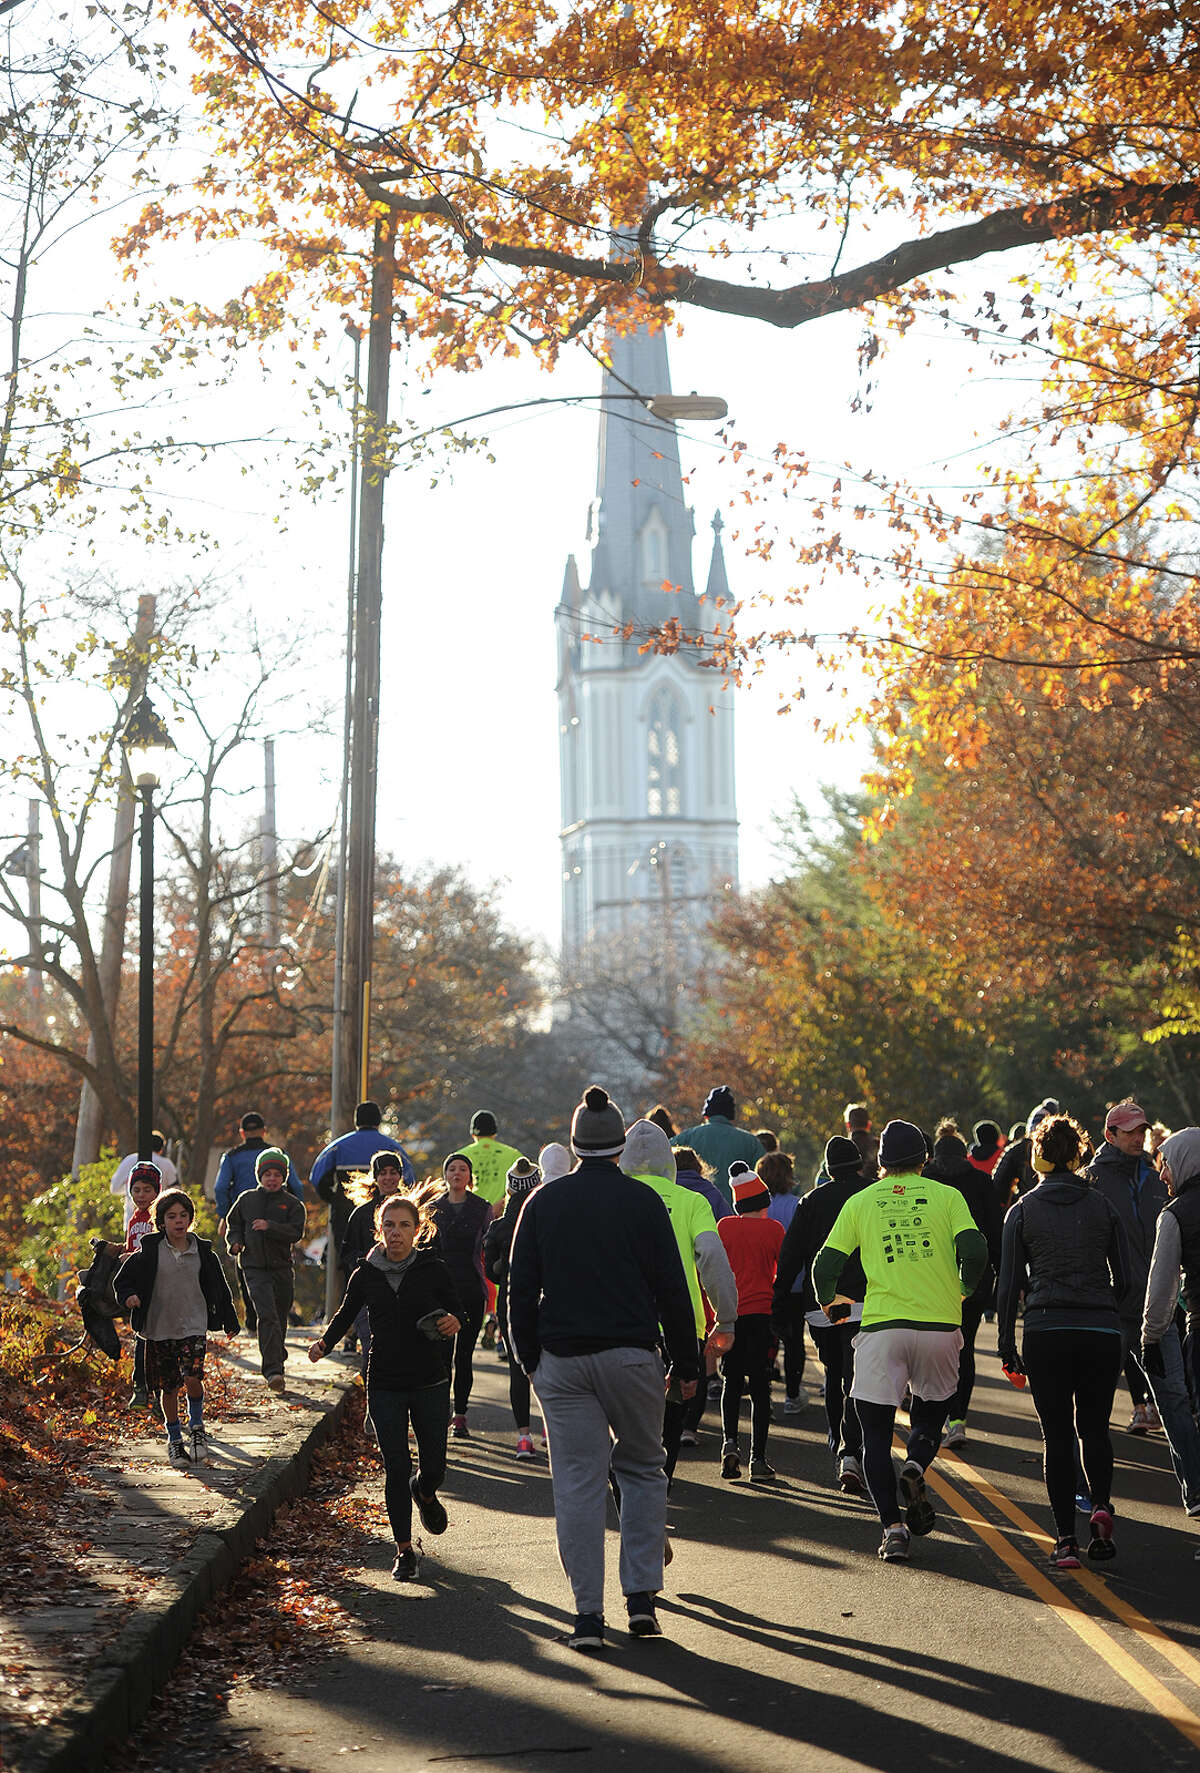 Runners head for the start of the annual Pequot Runners 5-mile Thanksgiving Day Road Race in Fairfield, Conn. on Thursday, November 23, 2017. Over 4000 runners registered for this year's race.